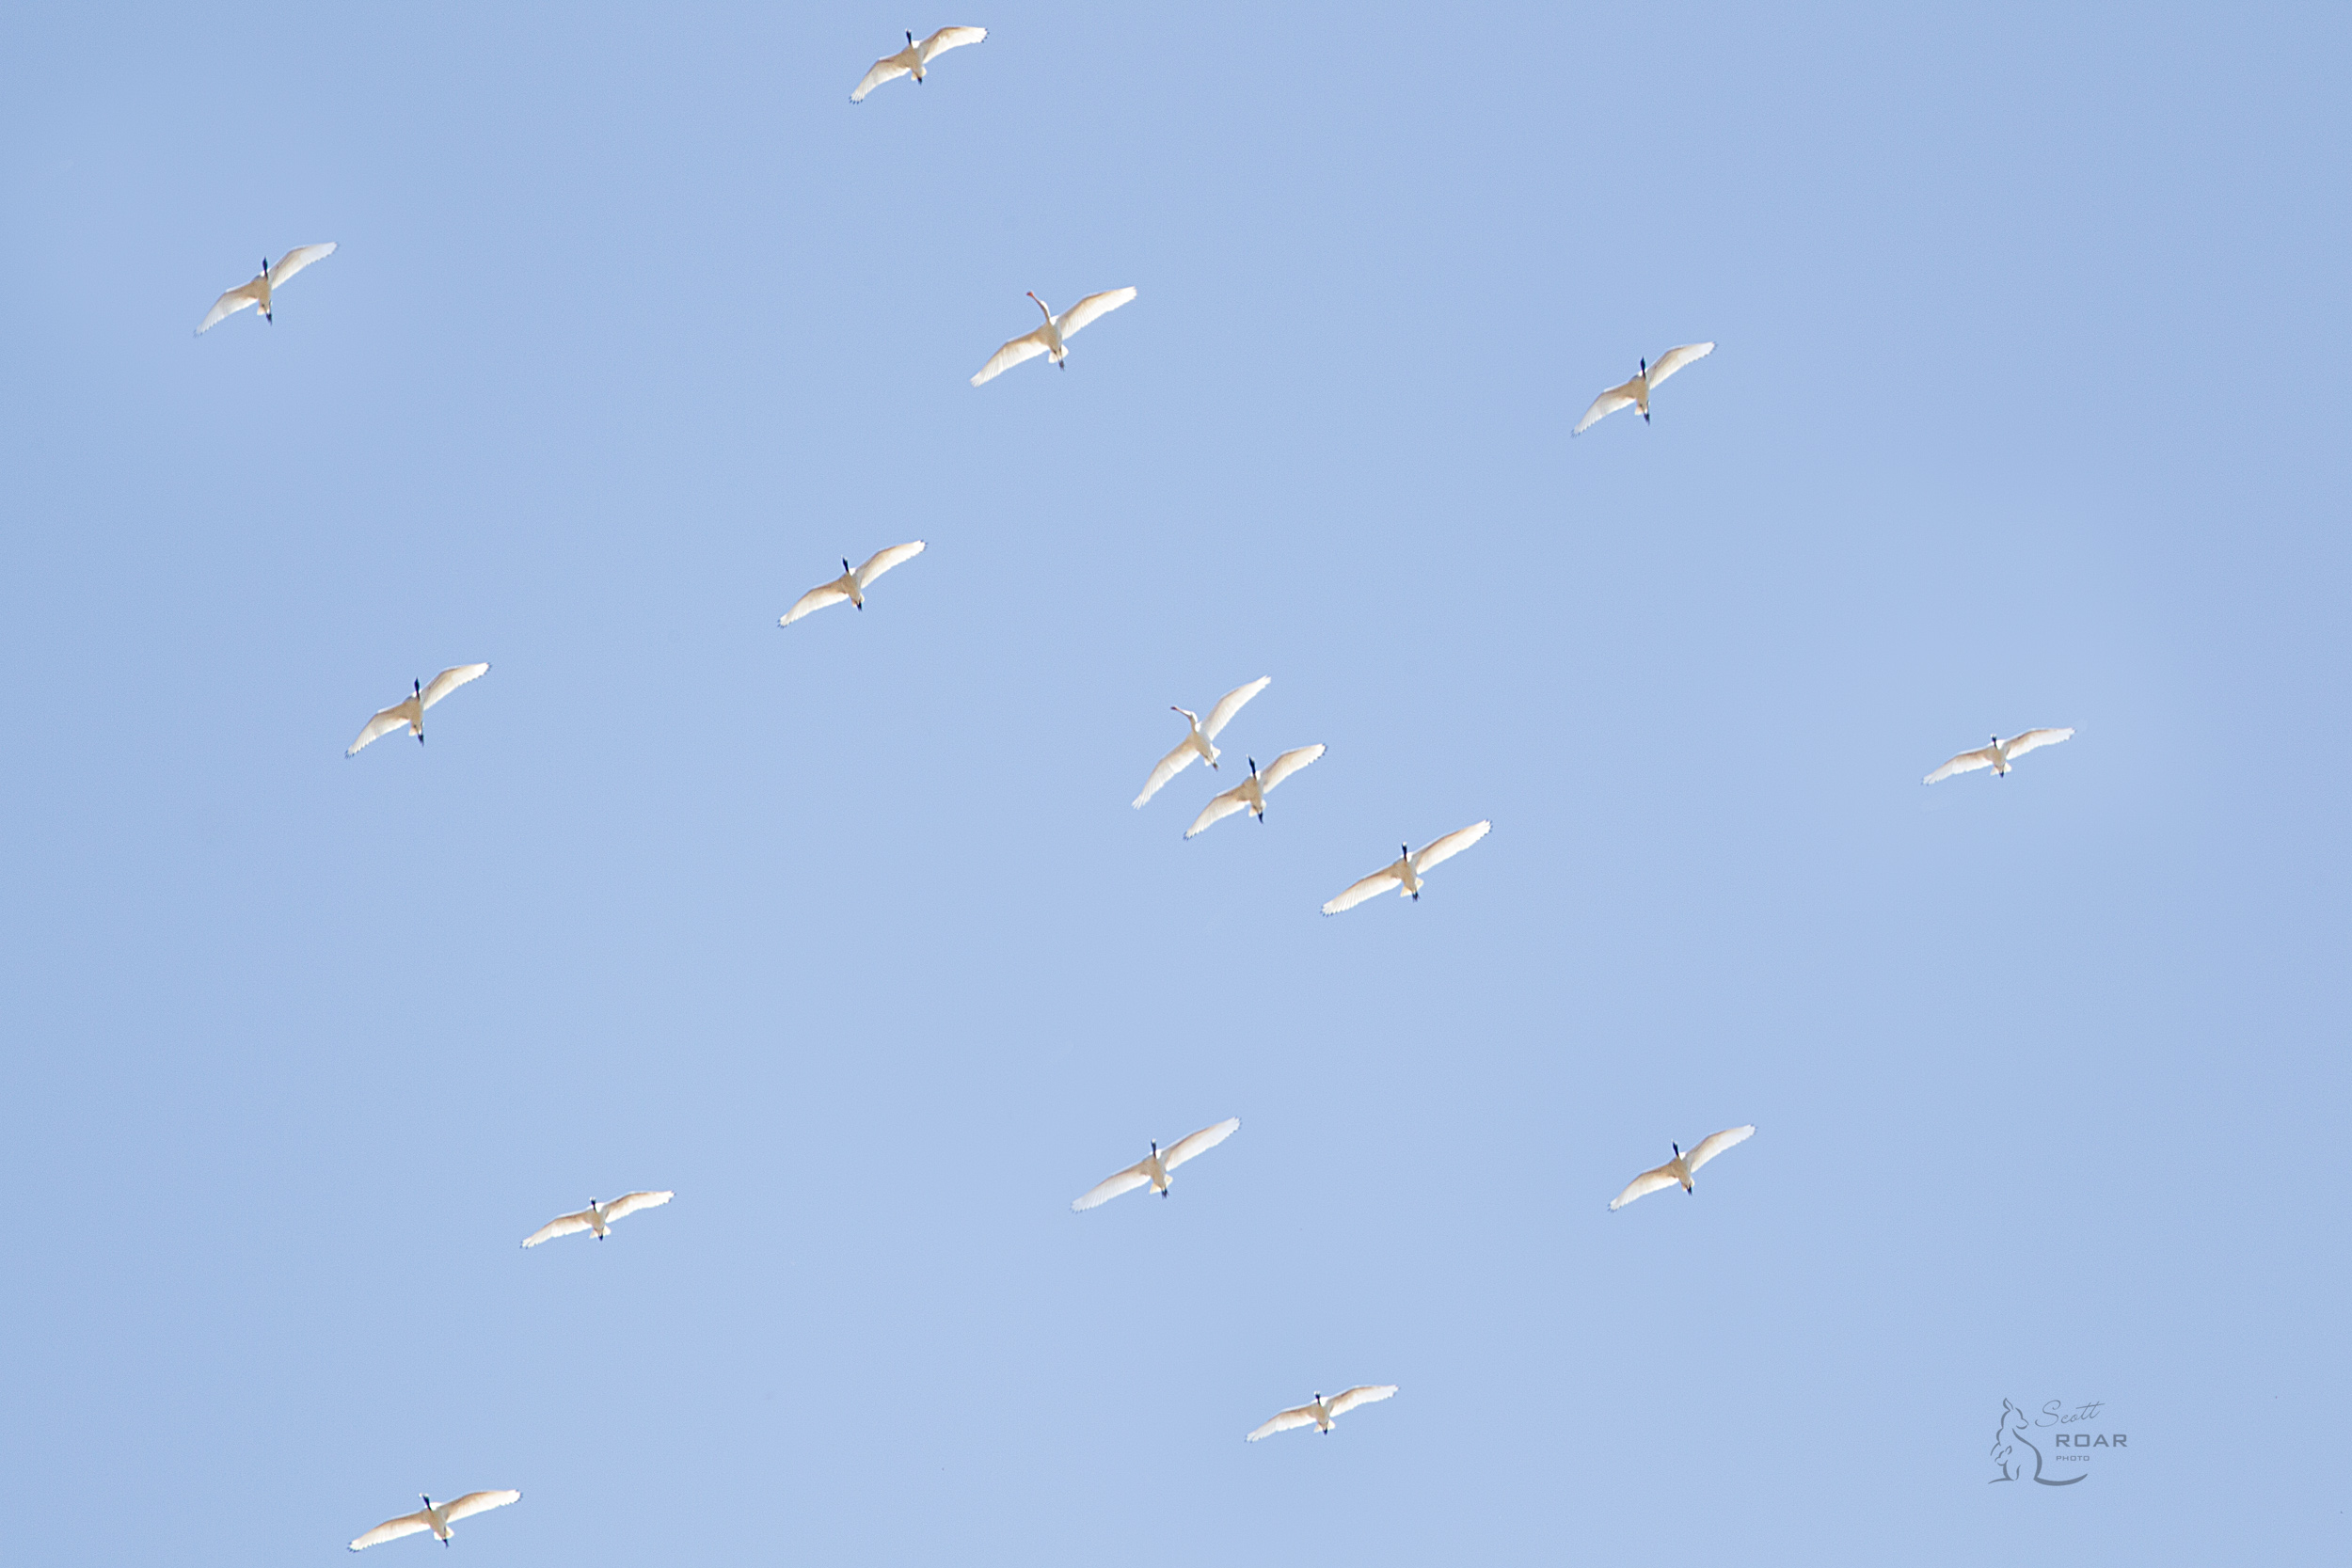 A flock of Ibis flying over with 2 Spoonbills mixed in, can you spot them?